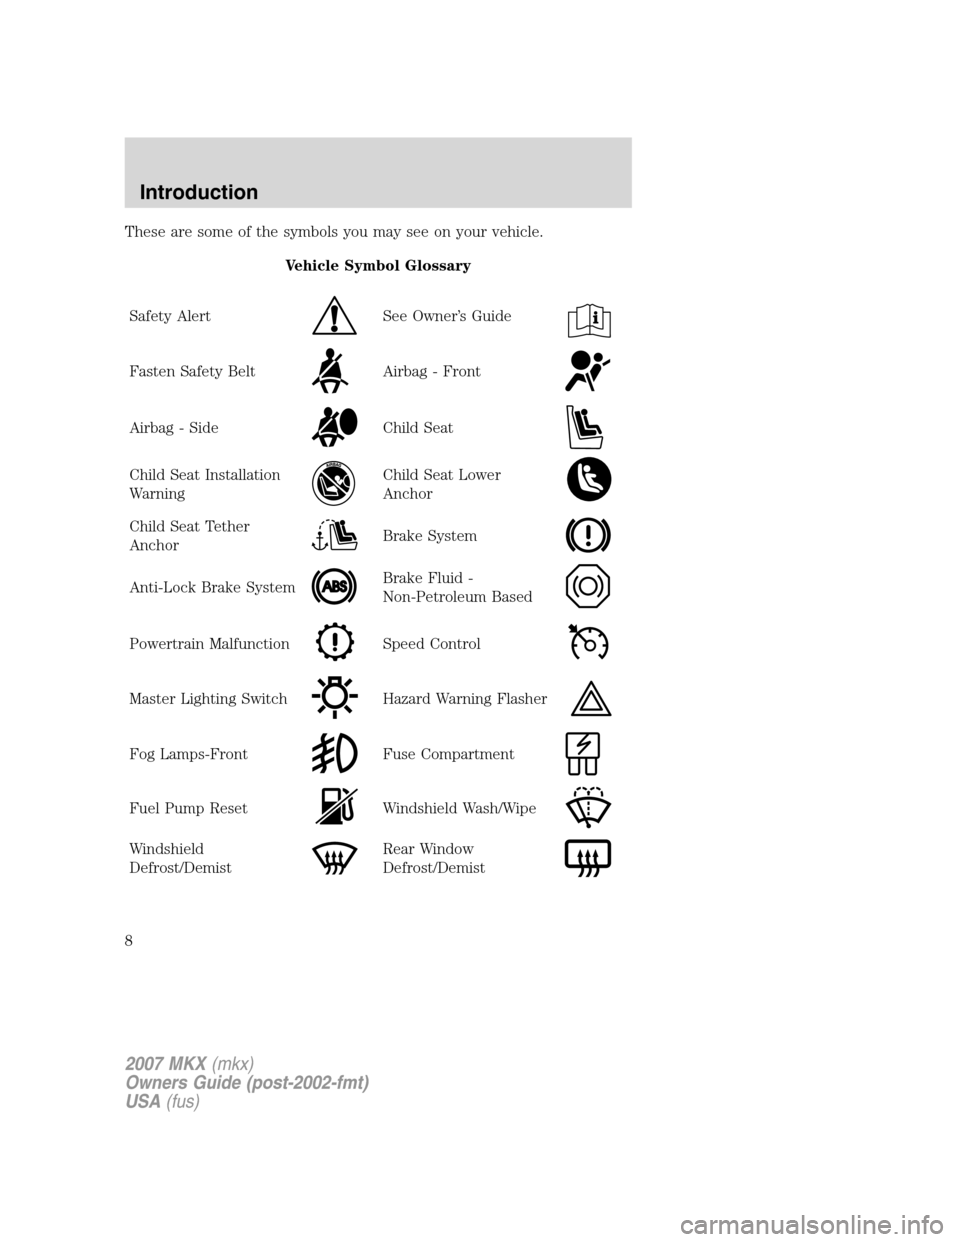 LINCOLN MKX 2007  Owners Manual These are some of the symbols you may see on your vehicle. Vehicle Symbol Glossary Safety Alert See Owner's Guide Fasten Safety BeltAirbag - Front Airbag - SideChild Seat Child Seat Installation War